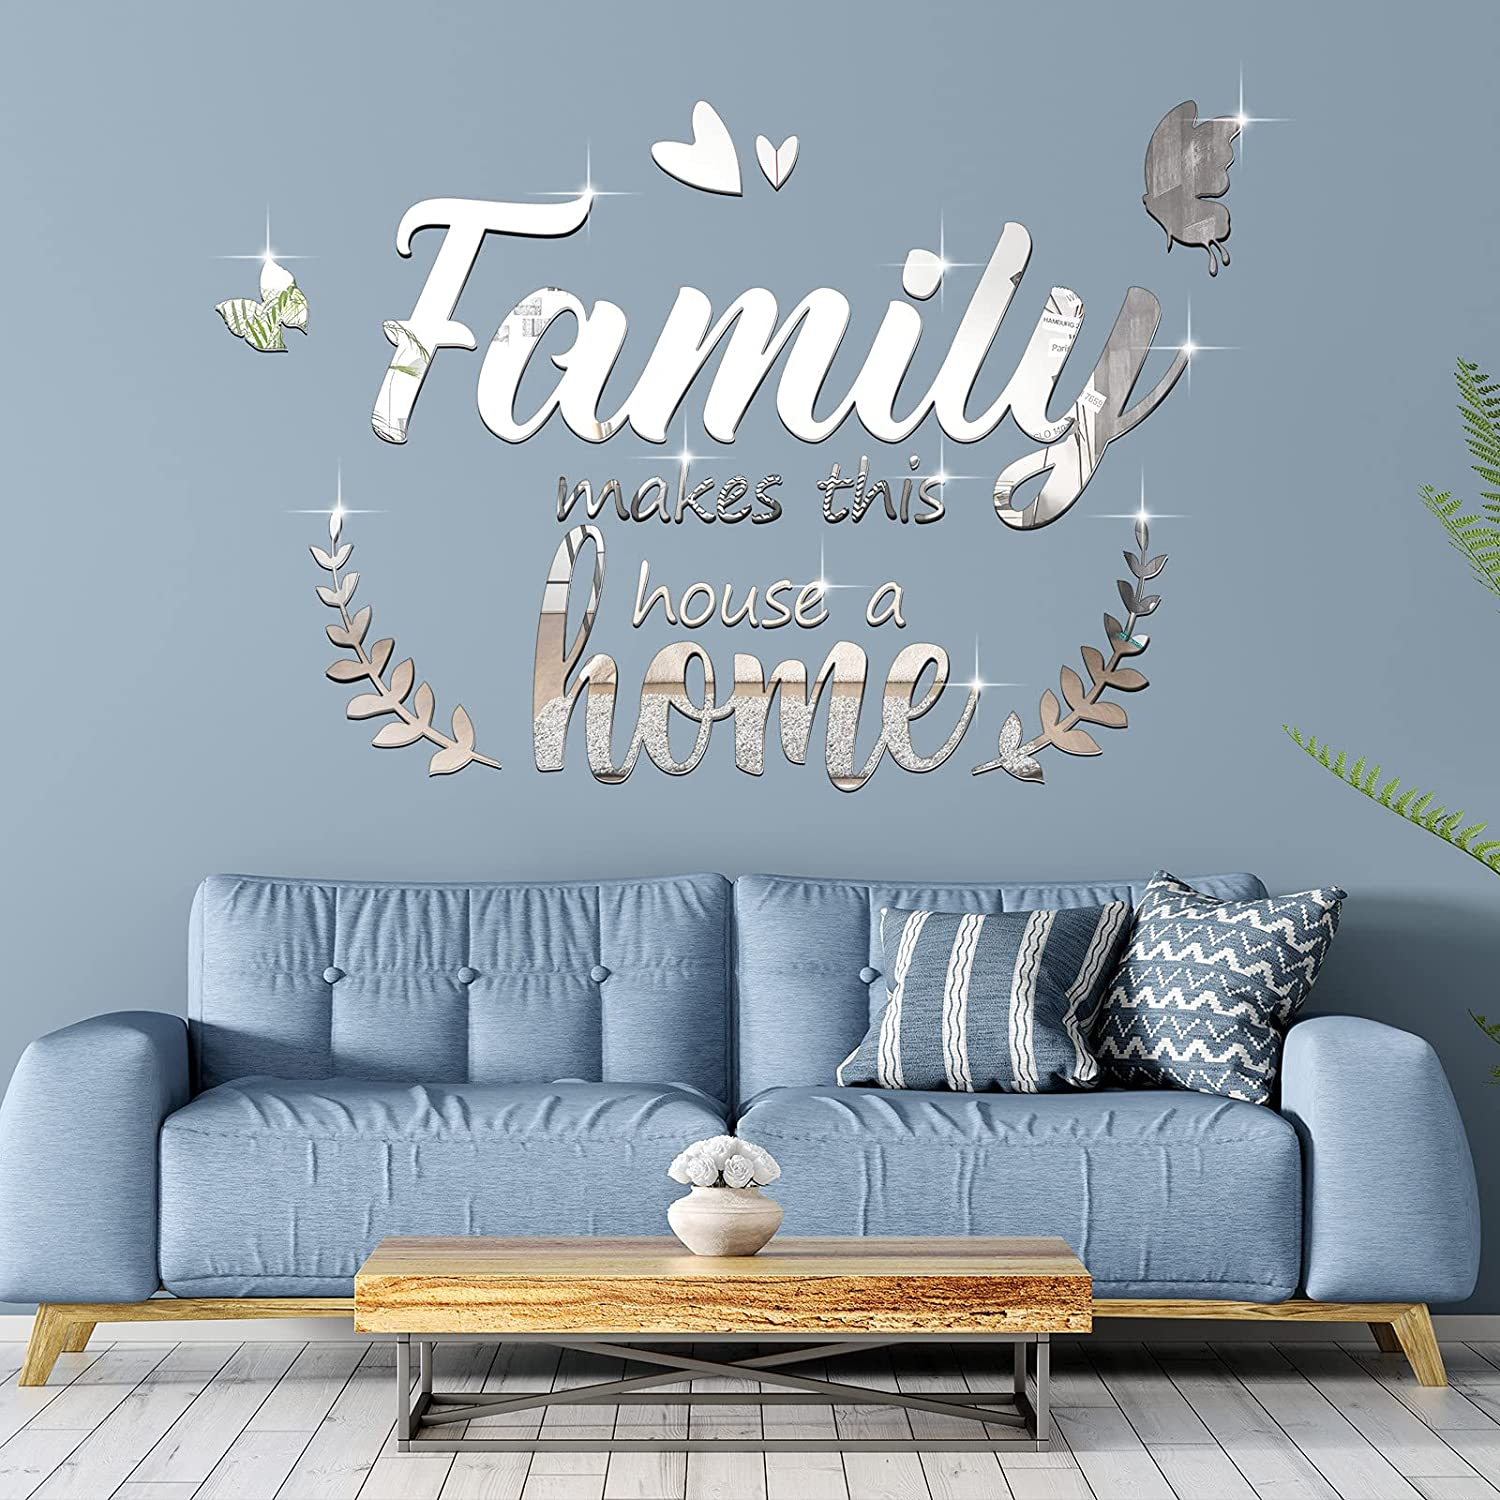 3D Acrylic Mirror Decal Wall Decor Stickers Family Letter Quotes Wall Stickers Removable DIY Motivational Family Butterfly Mirror Stickers for Home Office Dorm Mirror Wall Decoration (Black) (Silver)